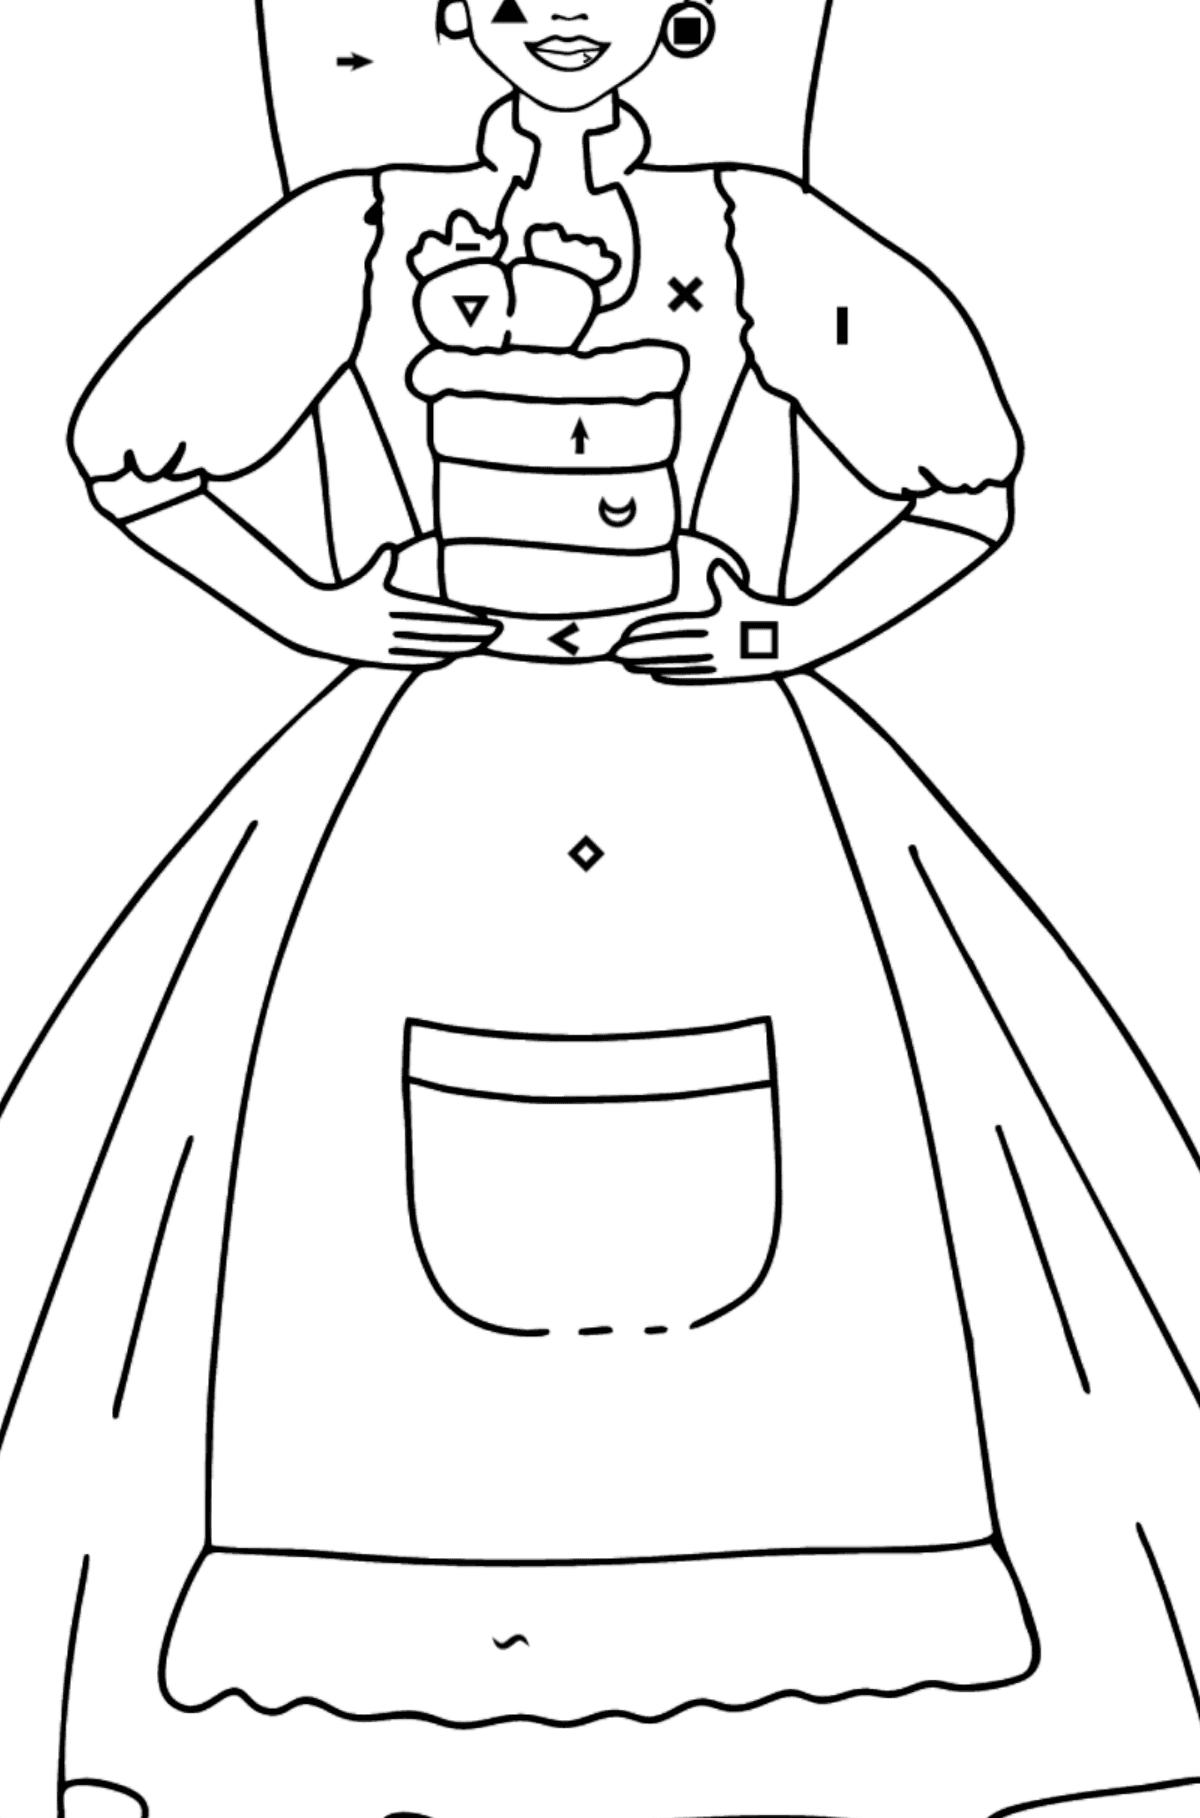 Barbie Doll and Cake coloring page - Coloring by Symbols for Kids